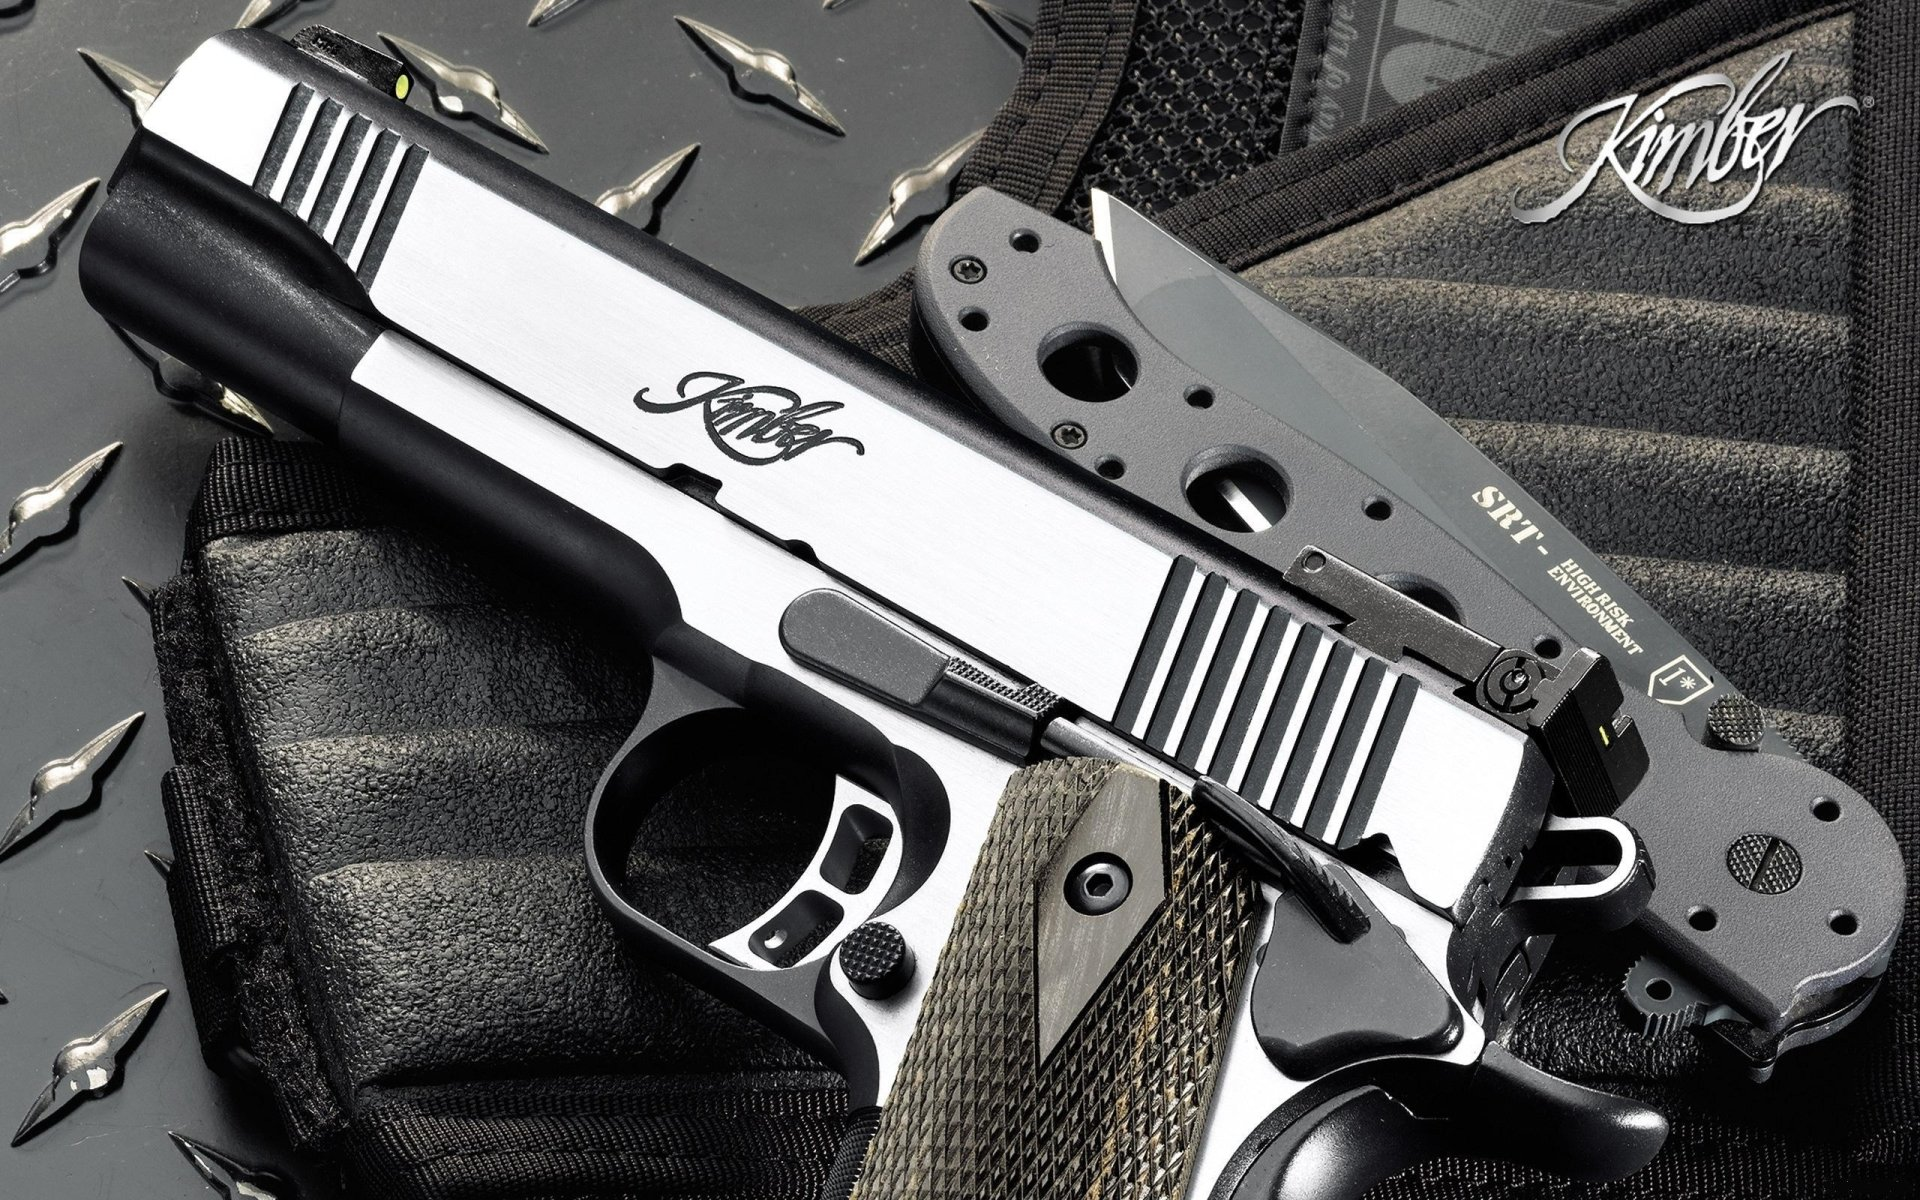 Weapons - Kimber Pistol  Wallpaper